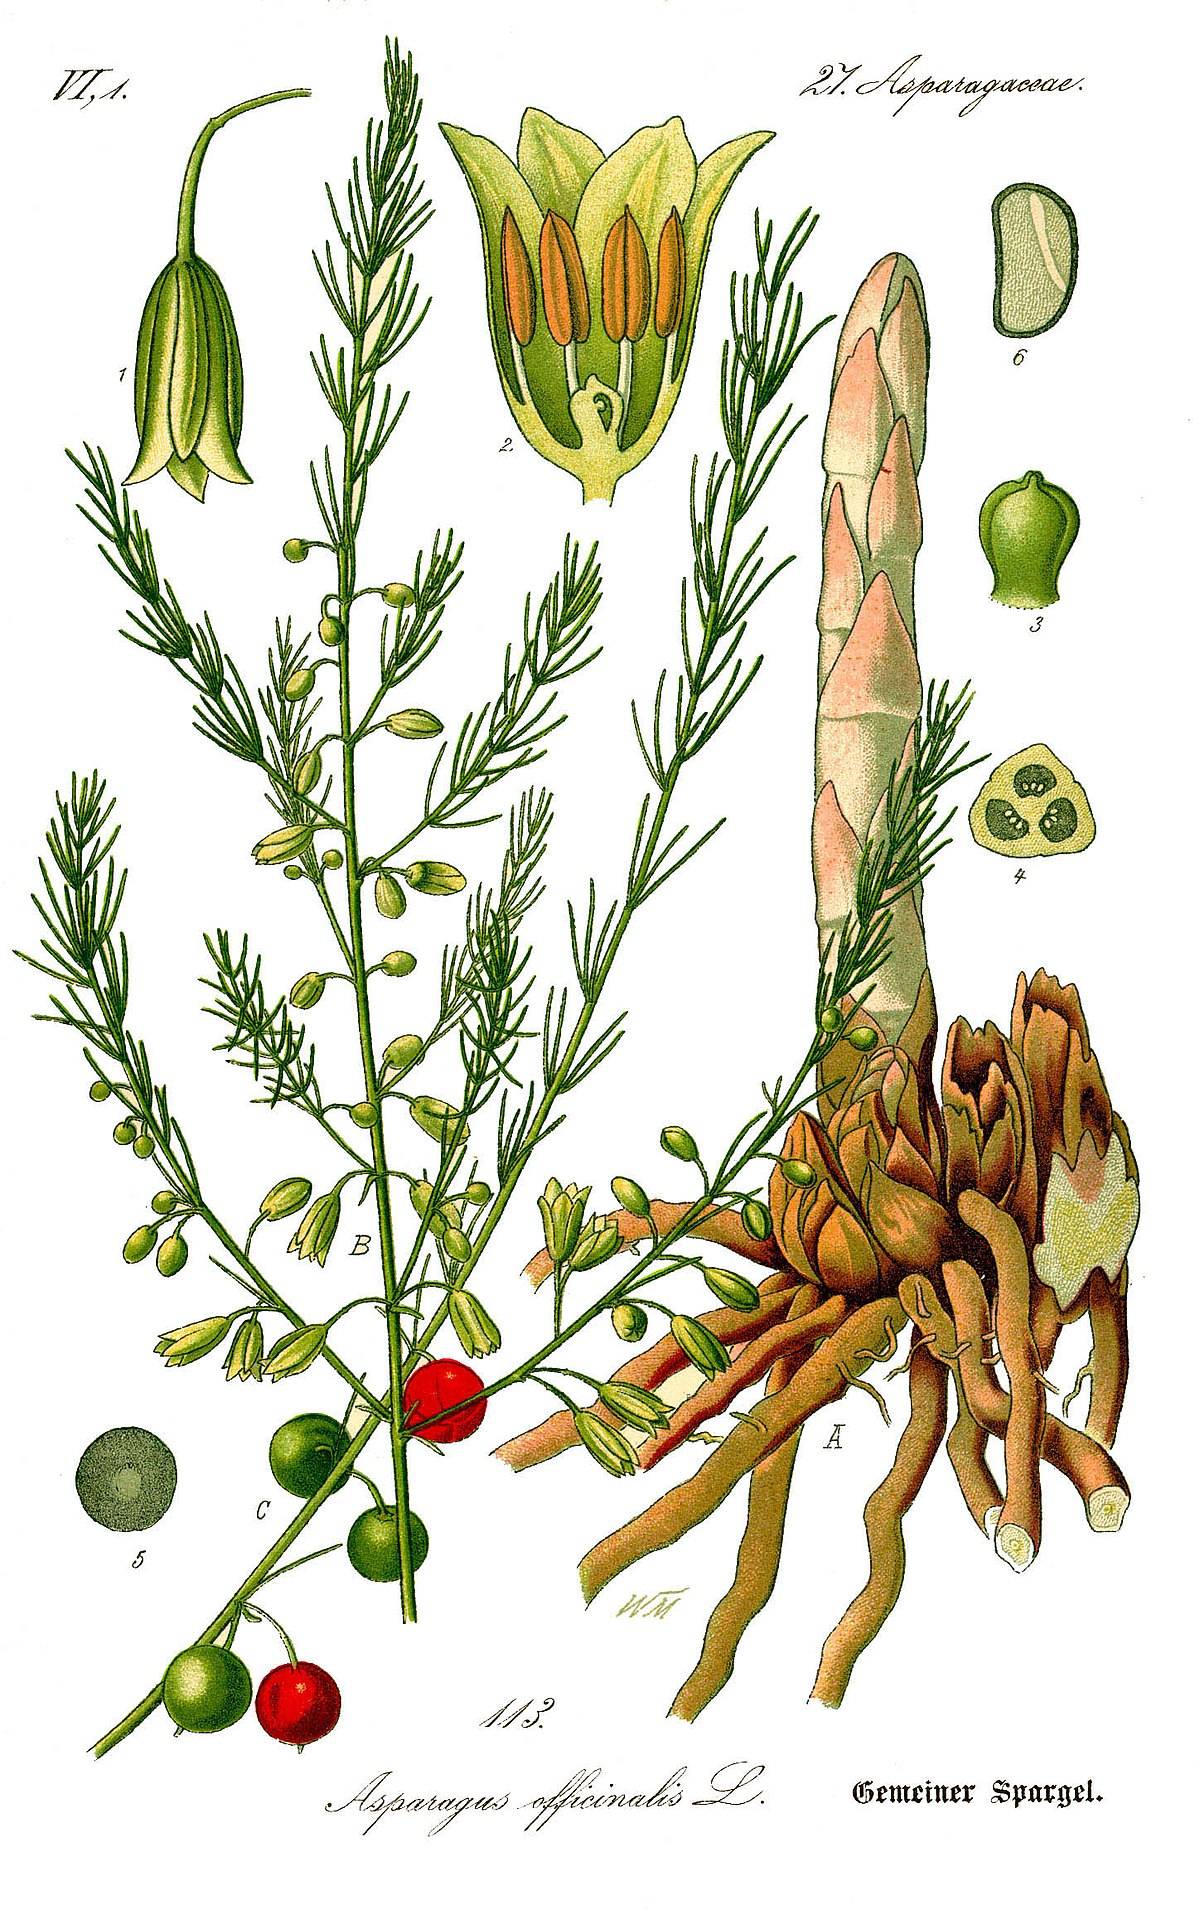 Asparagus officinalis wikipedia for Bacche rosse nomi